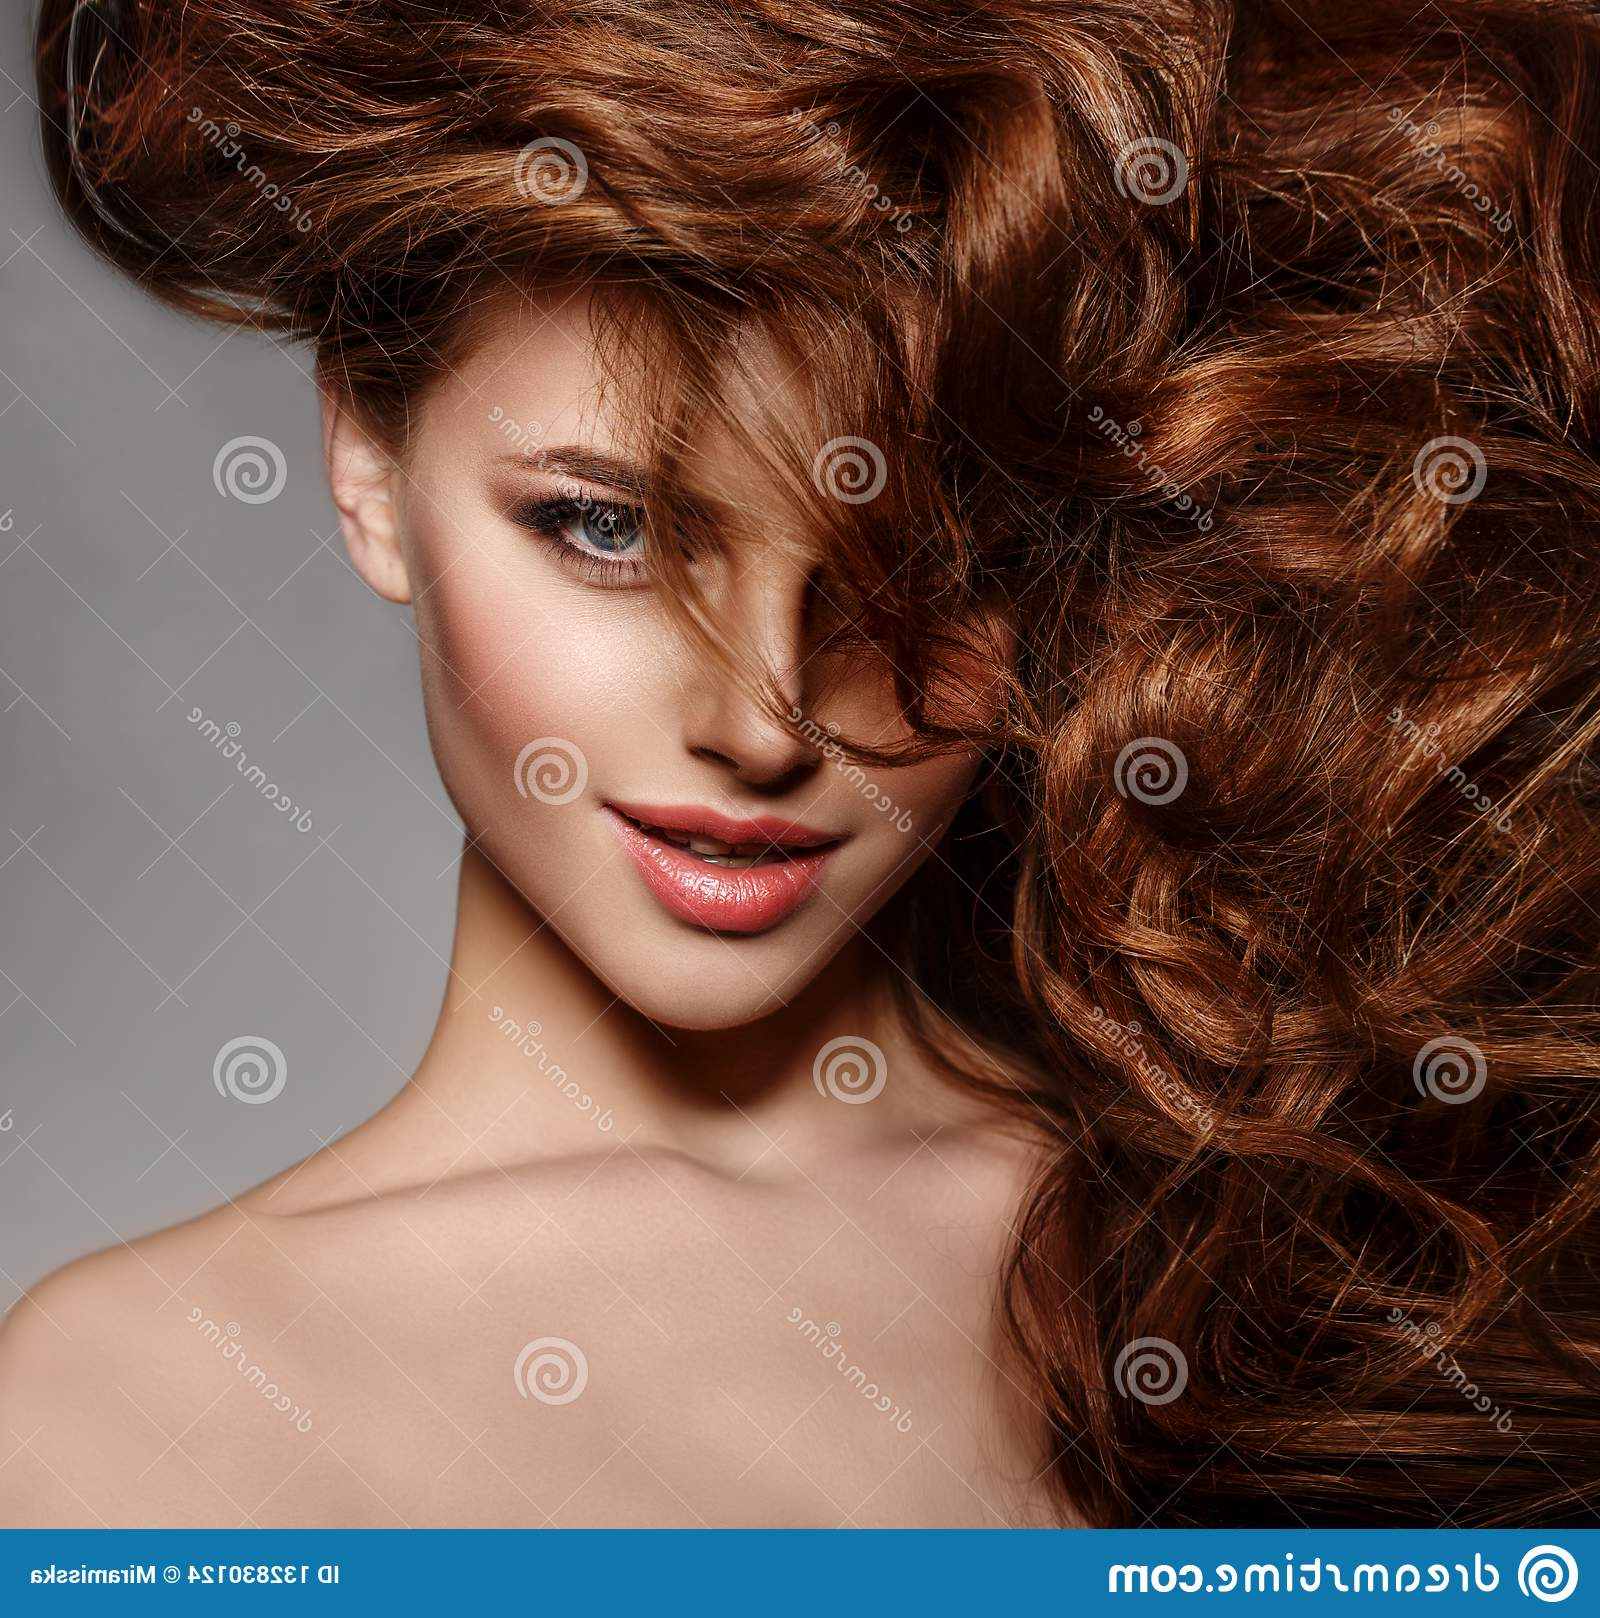 Current Shiny Tousled Curls Hairstyles Throughout Beauty Fashion Model With Long Shiny Hair (View 5 of 20)